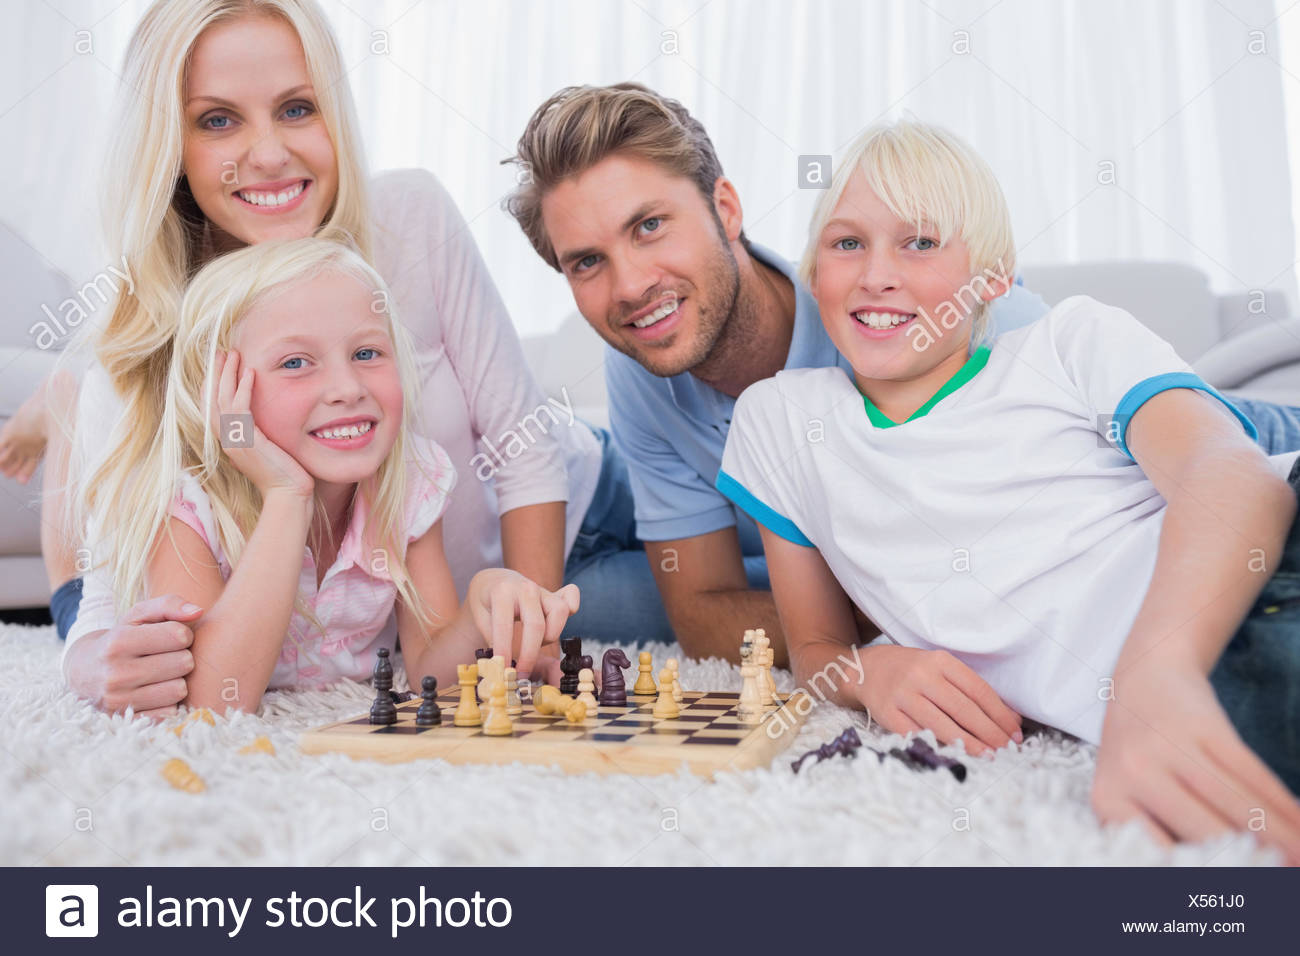 Smiling family playing chess together - Stock Image